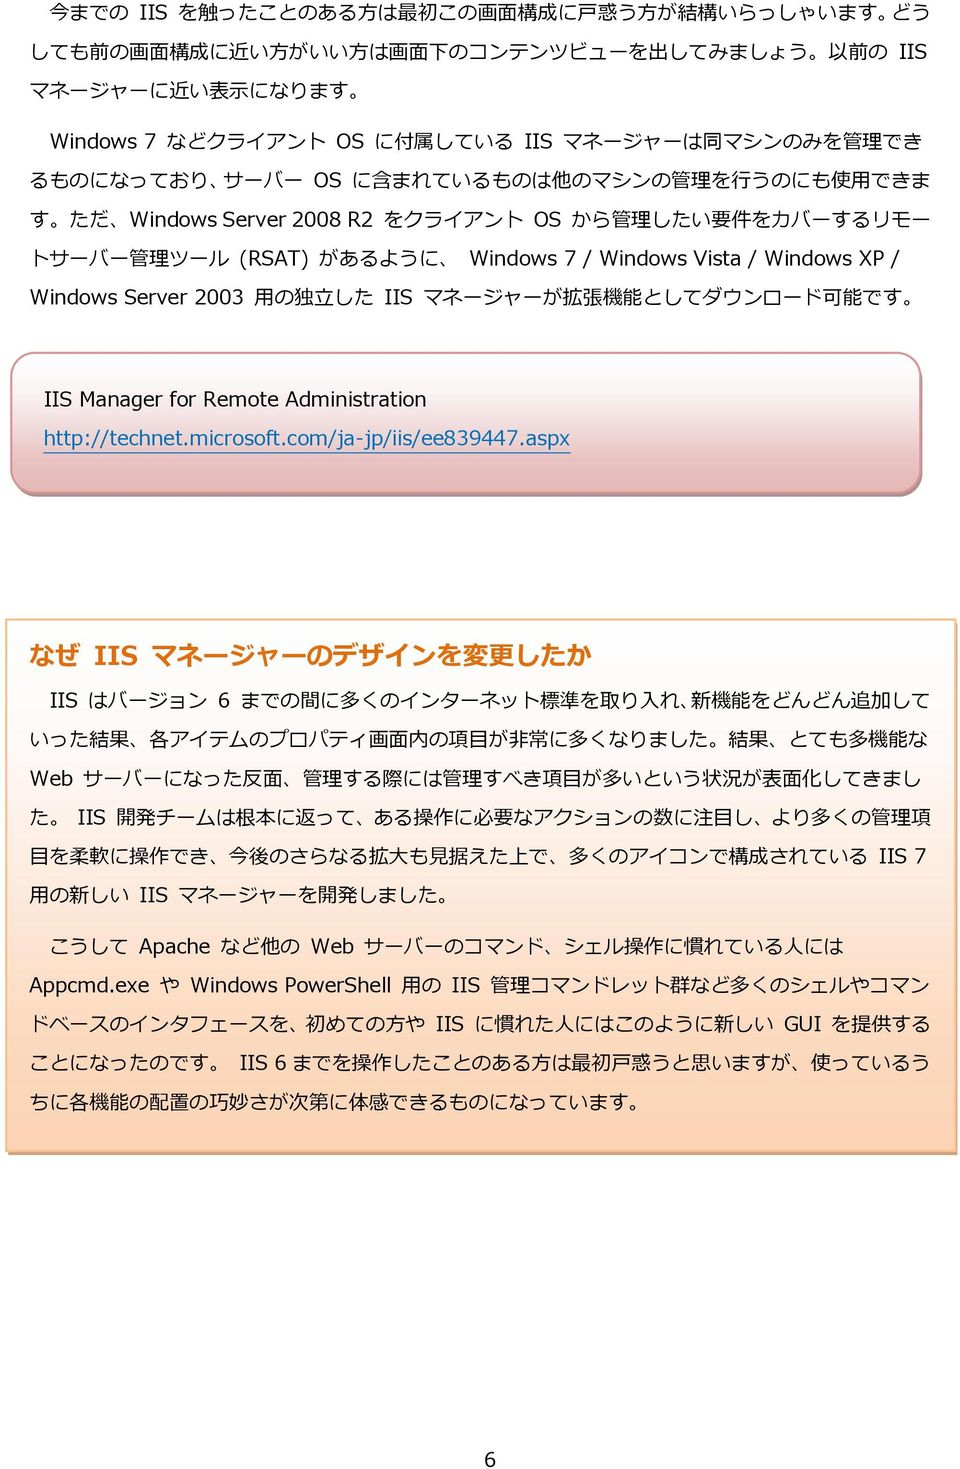 Vista / Windows XP / Windows Server 2003 用 の 独 立 した IIS マネージャーが 拡 張 機 能 としてダウンロード 可 能 です IIS Manager for Remote Administration http://technet.microsoft.com/ja-jp/iis/ee839447.